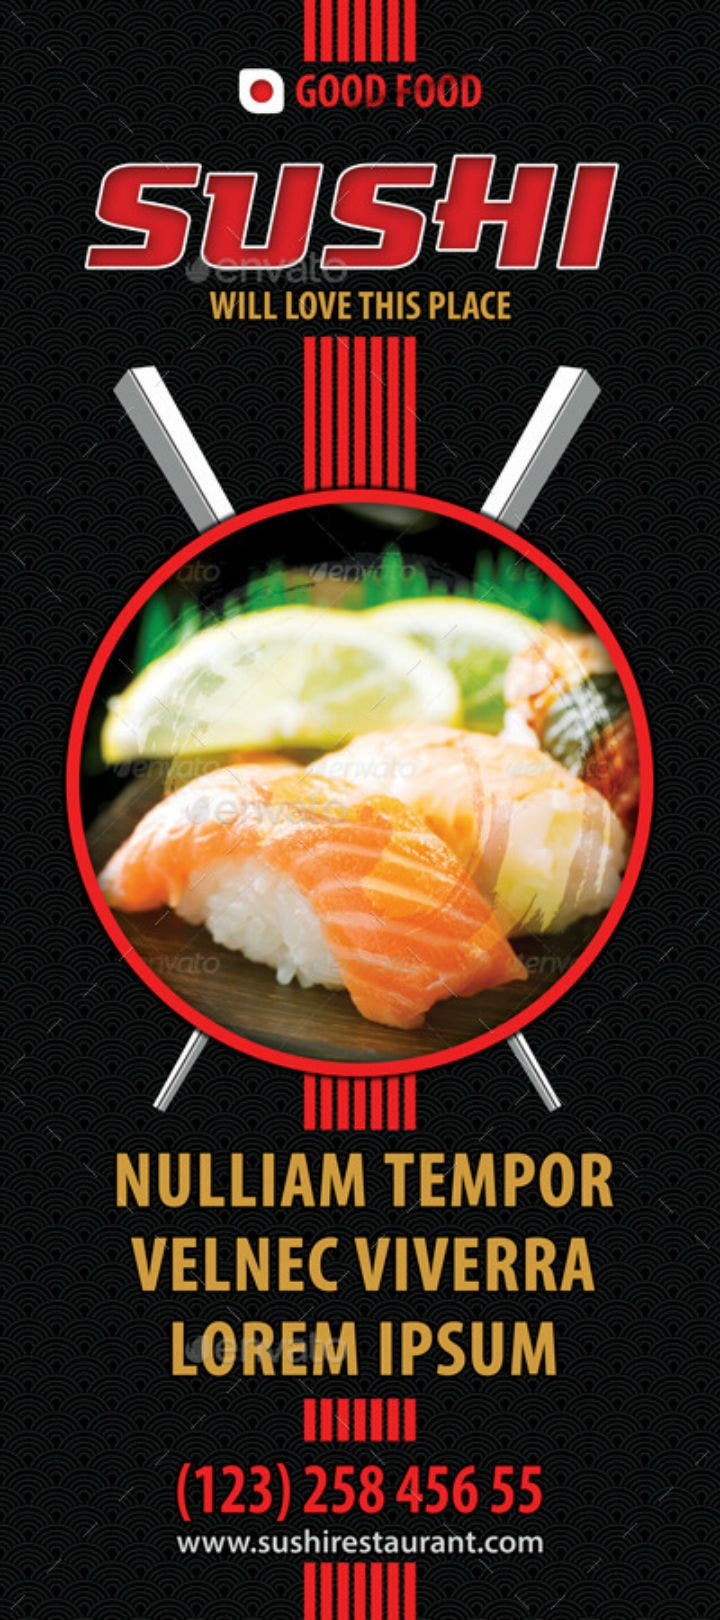 black-sushi-restaurant-rollup-banner-psd-template